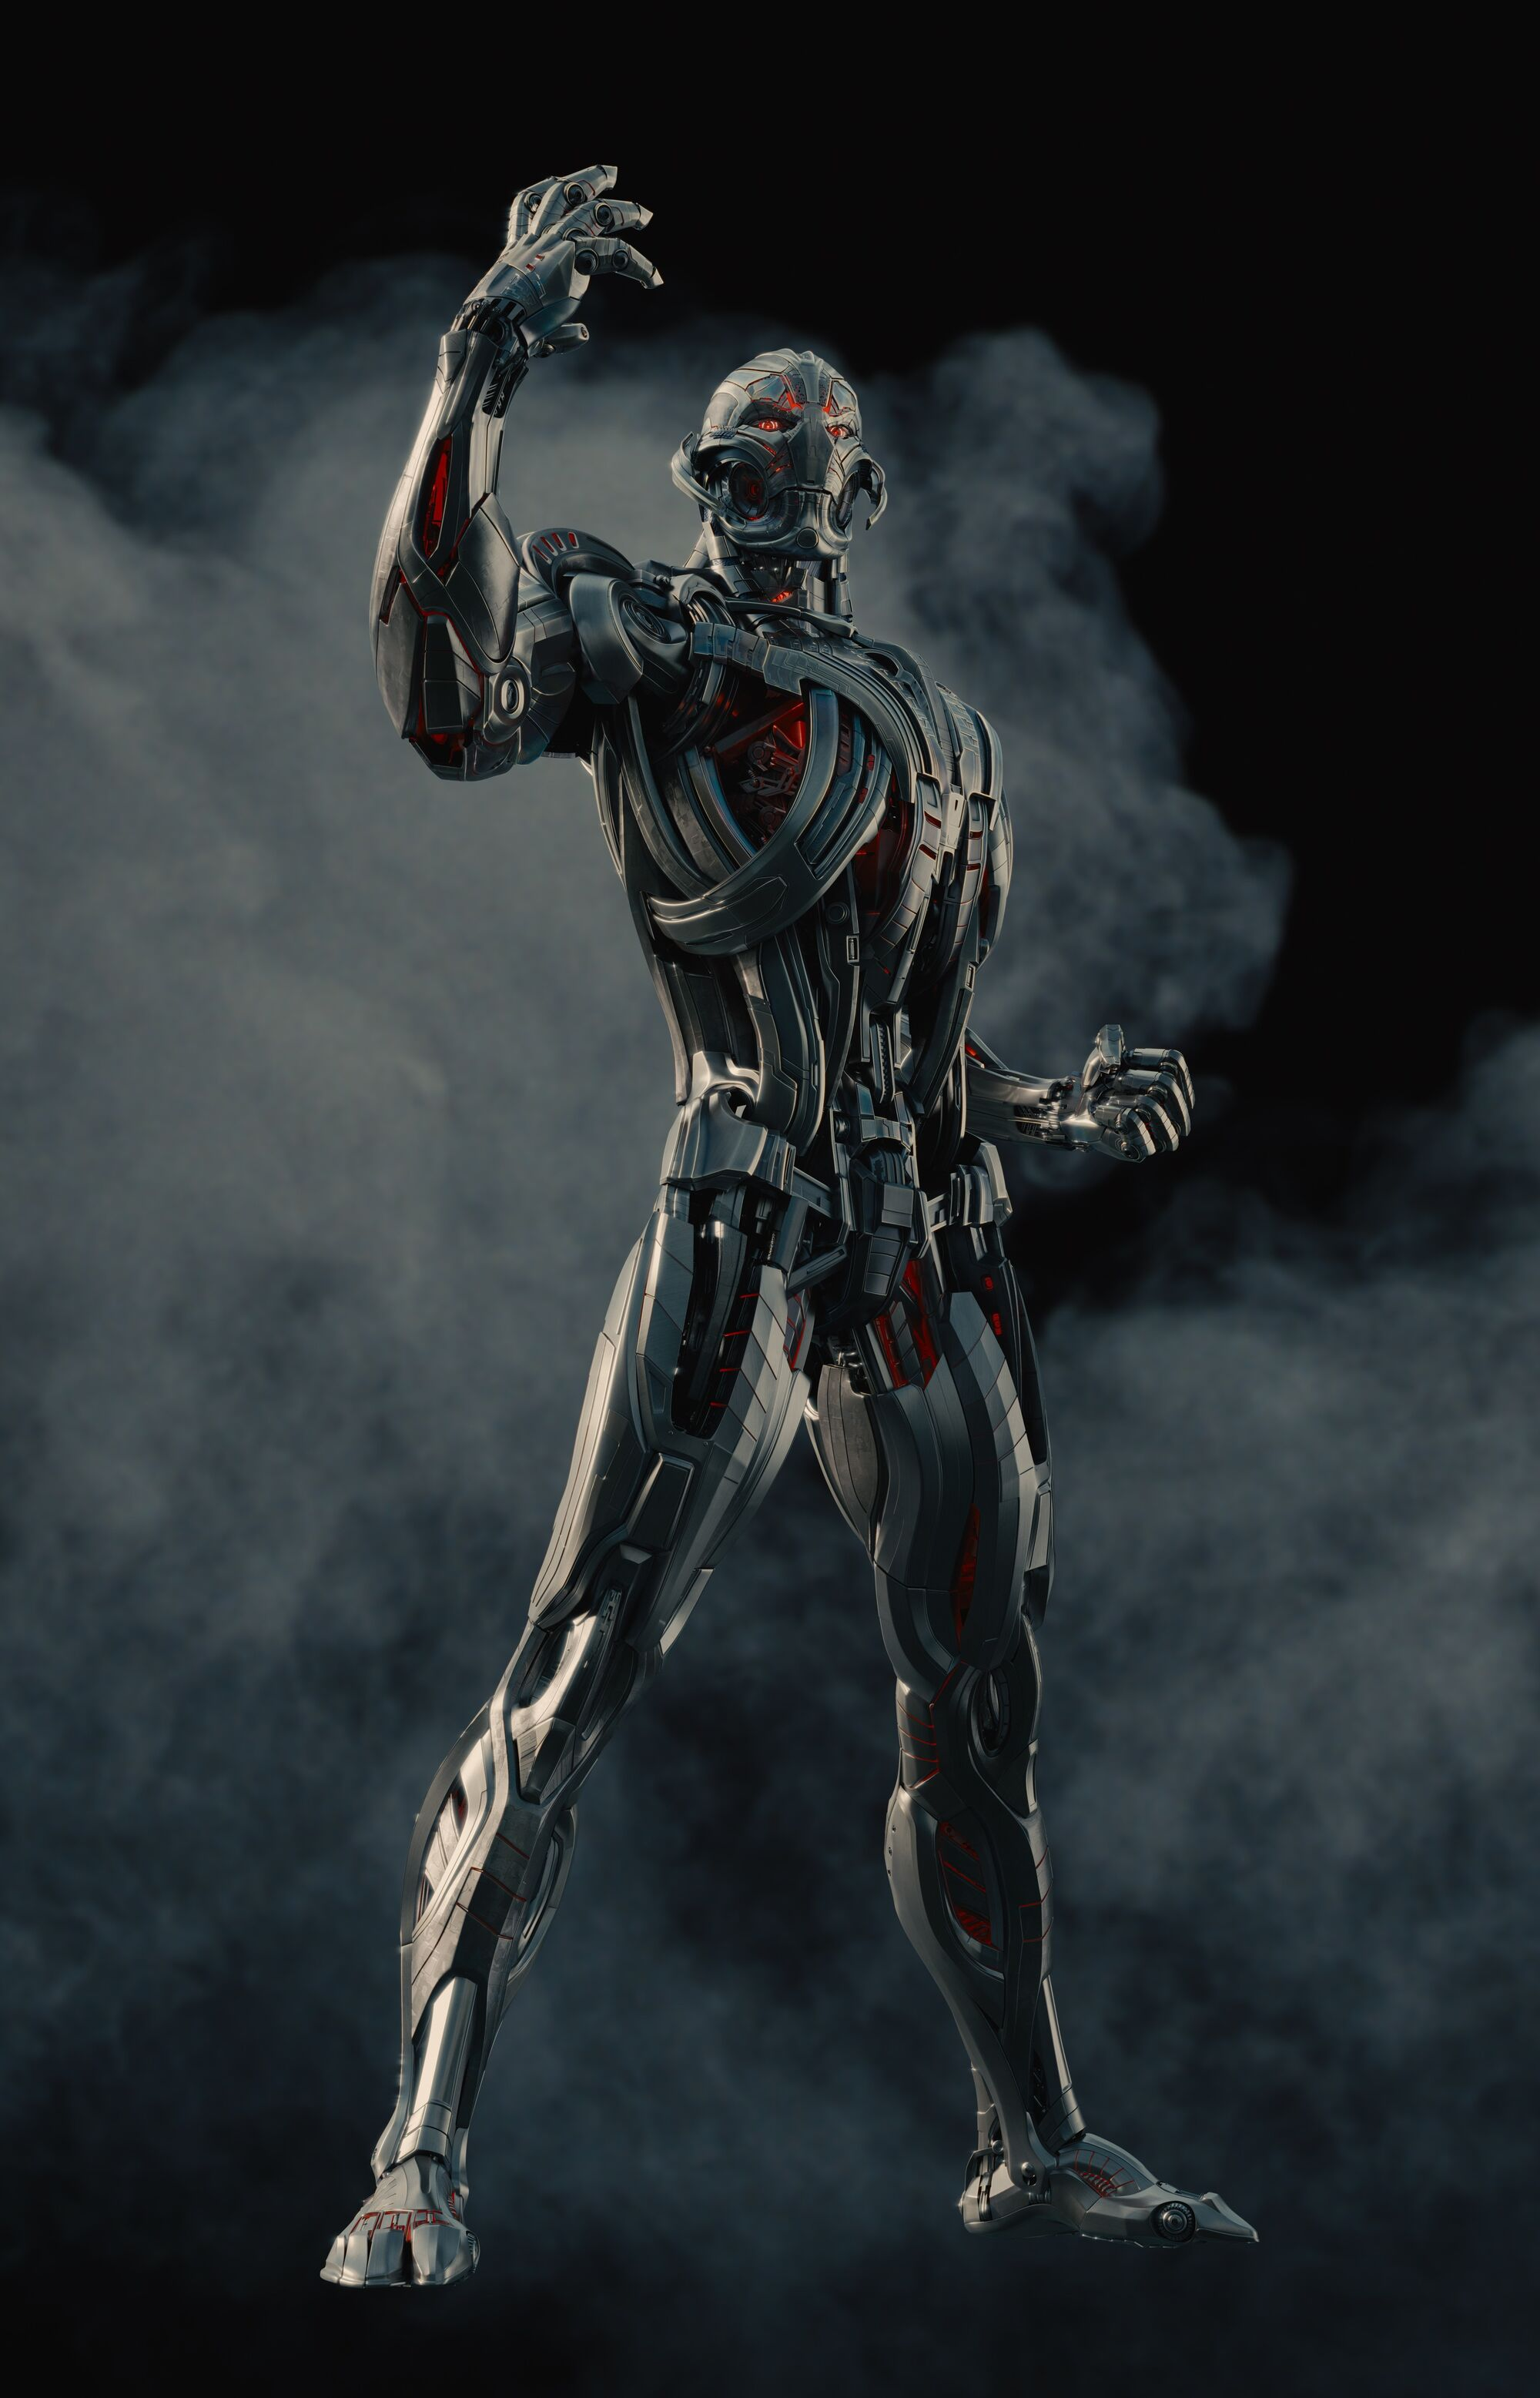 Ultron (Marvel Cinematic Universe) | Villains Wiki | FANDOM powered